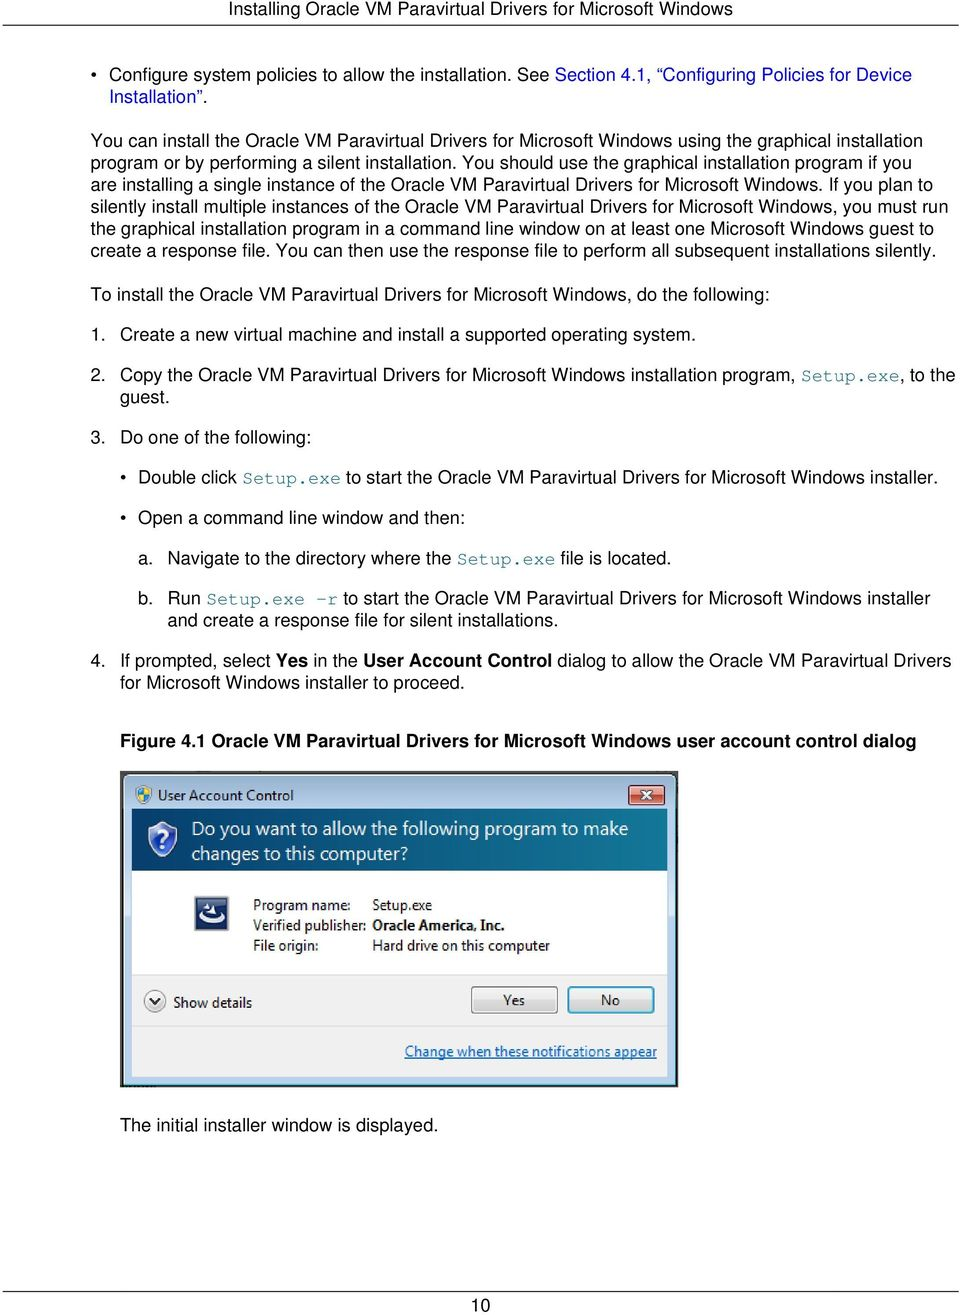 Oracle VM  Paravirtual Drivers for Microsoft Windows Release PDF